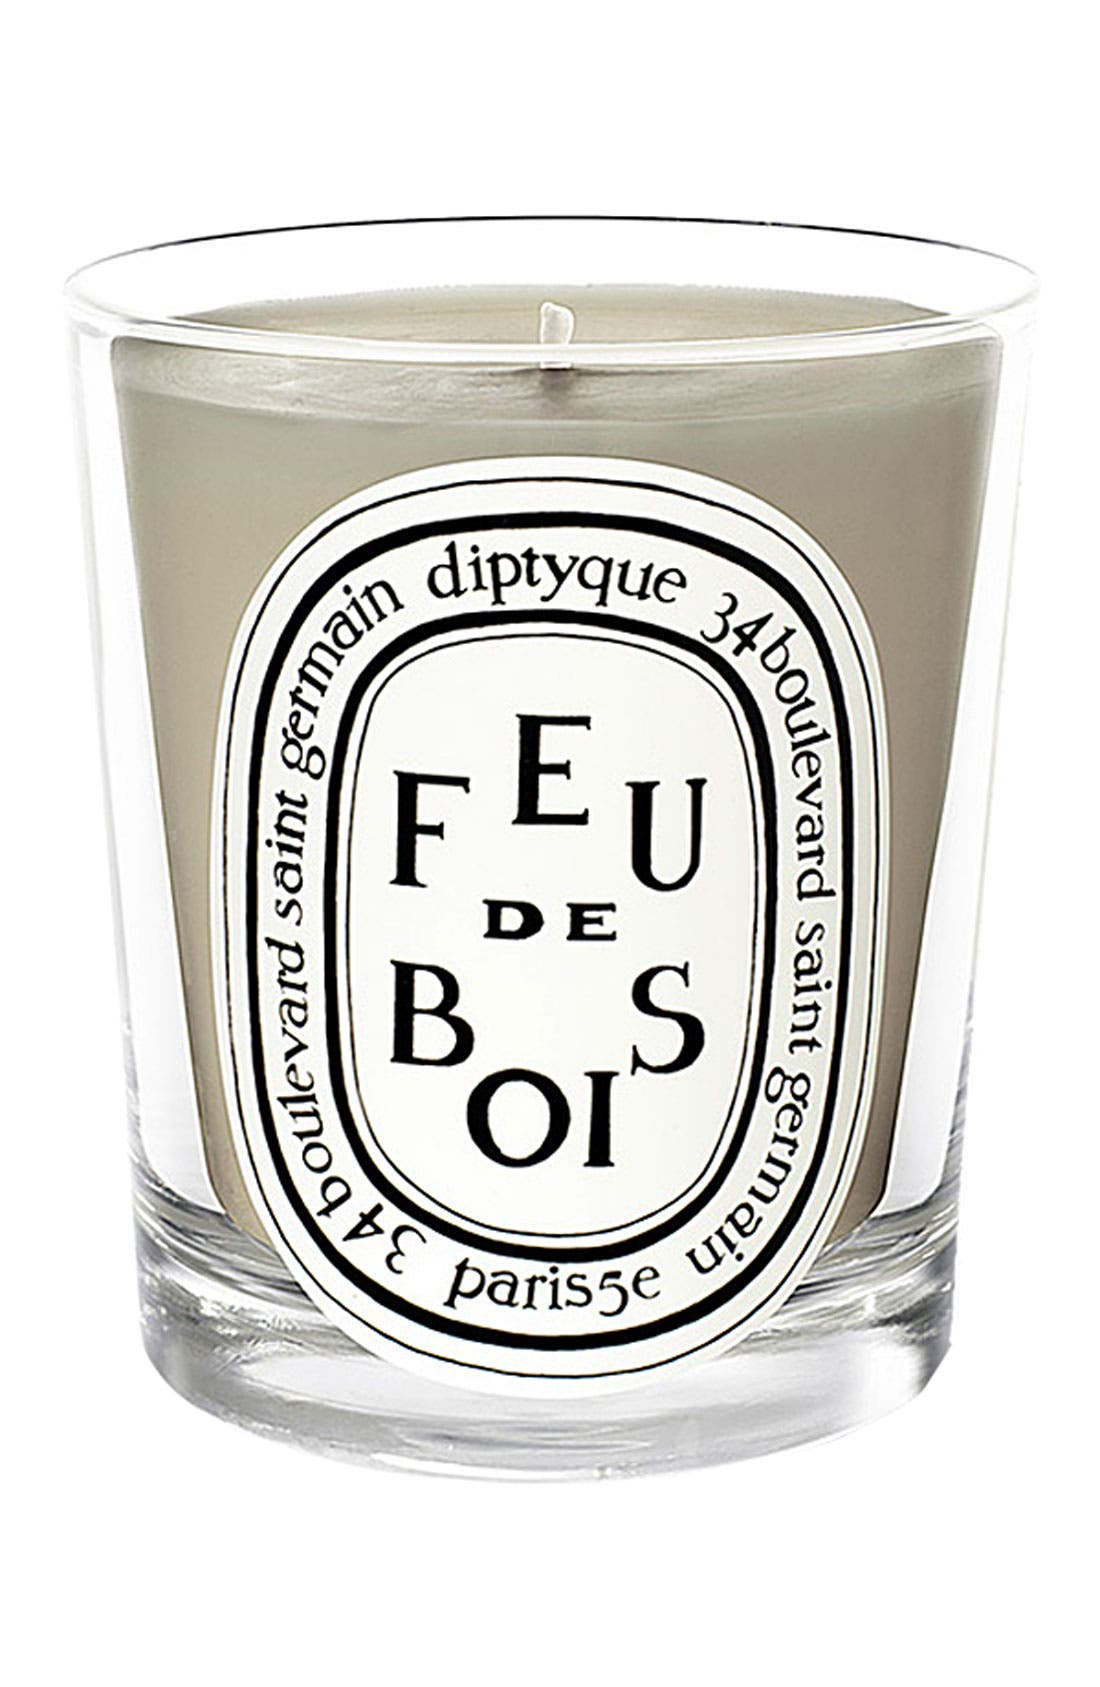 Main Image - diptyque Feu de Bois/Wood Fire Scented Candle